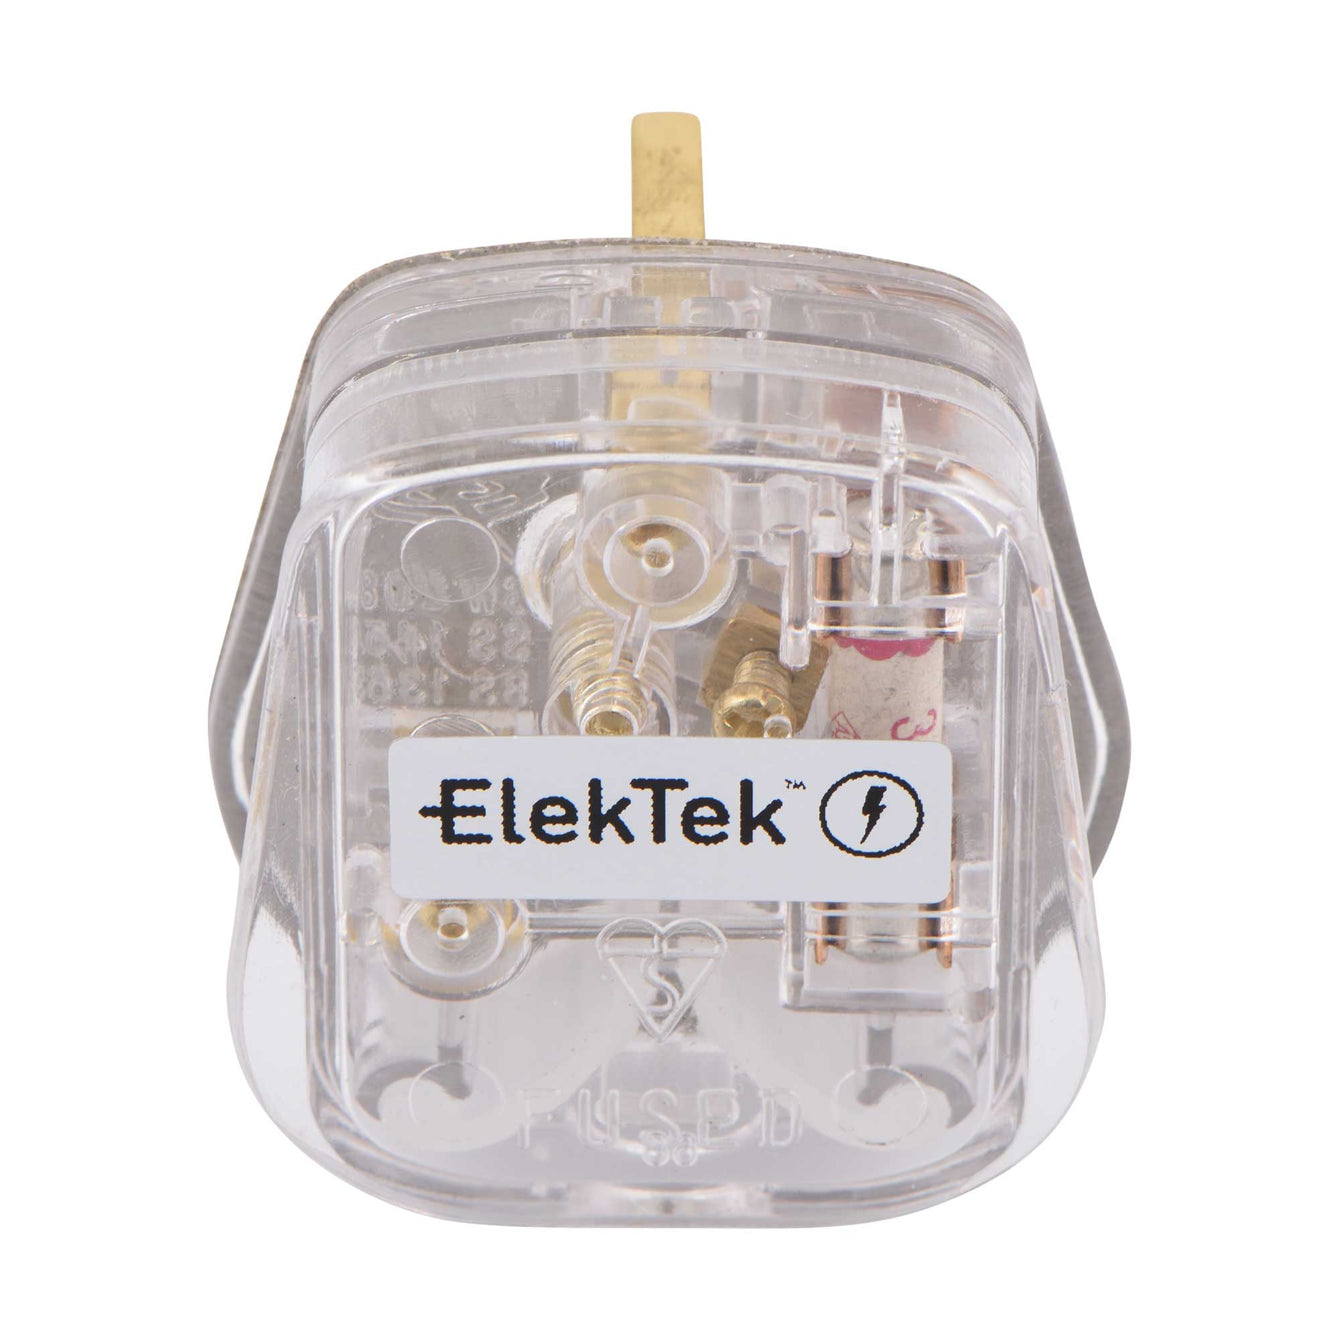 ElekTek 13A Plug Top with 3A Fuse Fitted Colours - Buy It Better